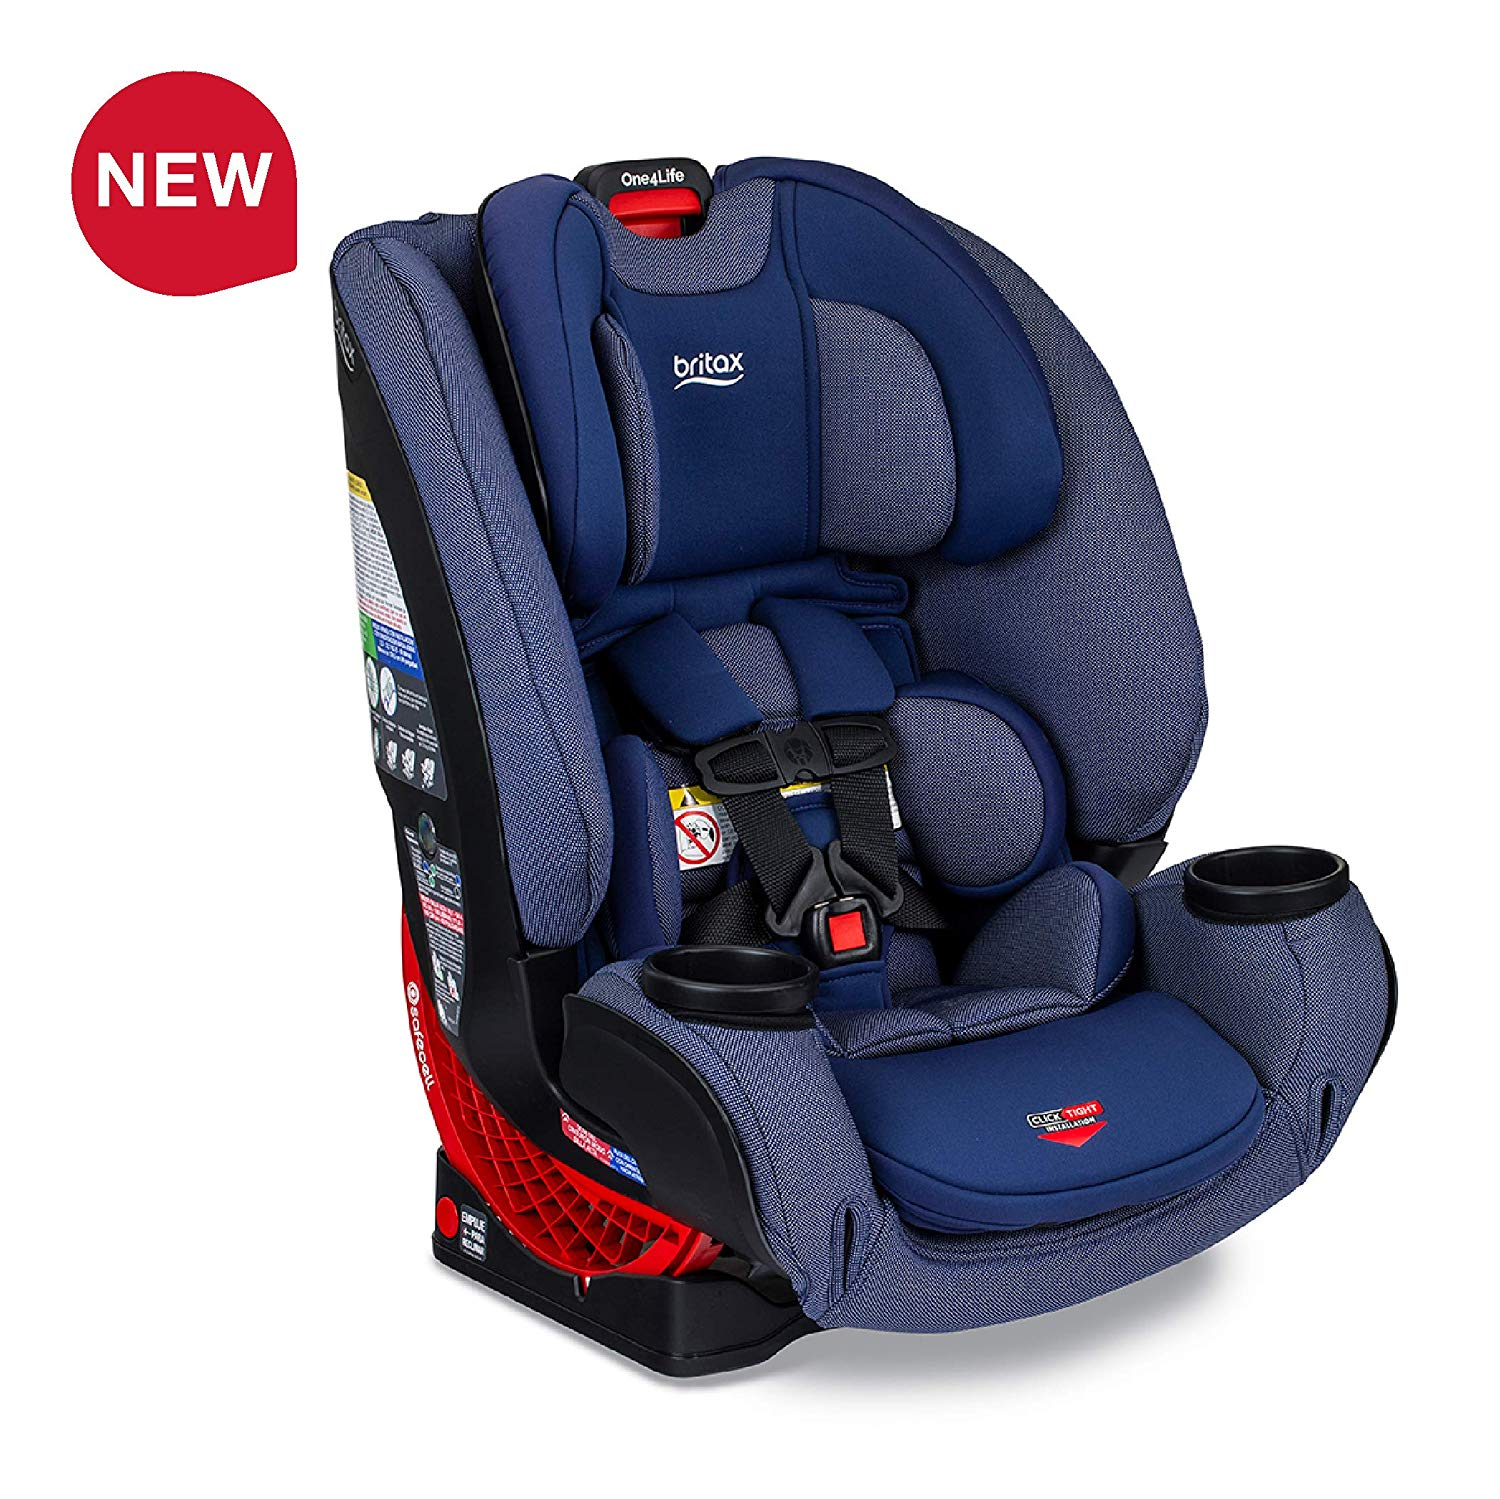 Britax One4Life All-in-One Car Seat - Cadet